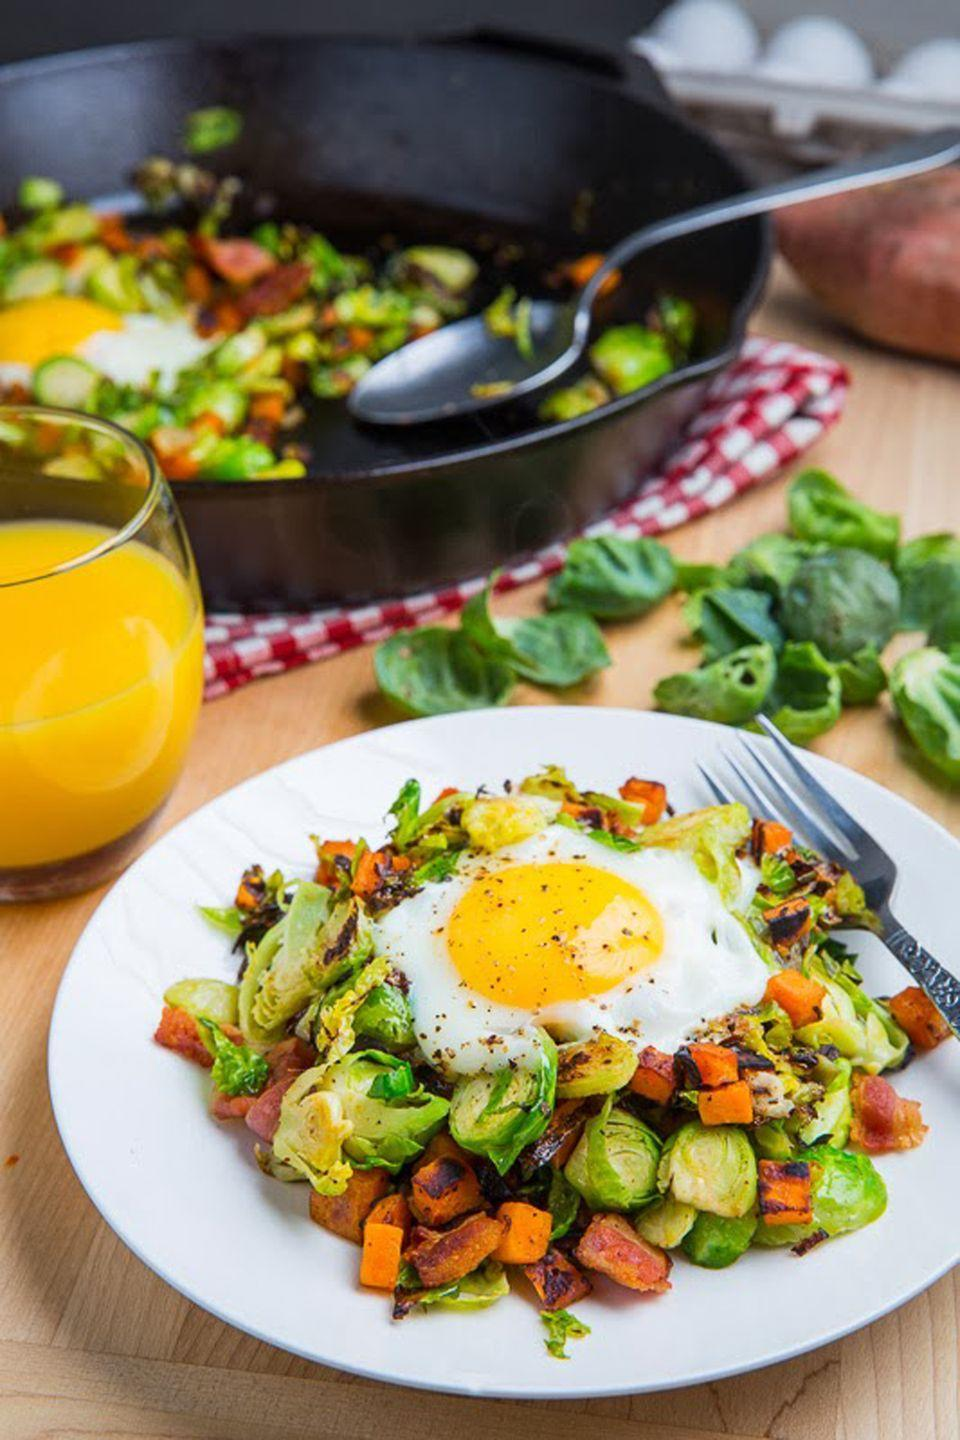 """<p>Don't let your Thanksgiving veggies go to waste! Simply add them to this hash recipe to create a breakfast dish with color.</p><p><strong>Get the recipe at <a href=""""http://www.closetcooking.com/2013/11/brussels-sprout-hash-with-sweet-potato.html"""" rel=""""nofollow noopener"""" target=""""_blank"""" data-ylk=""""slk:Closet Cooking"""" class=""""link rapid-noclick-resp"""">Closet Cooking</a>.</strong></p>"""